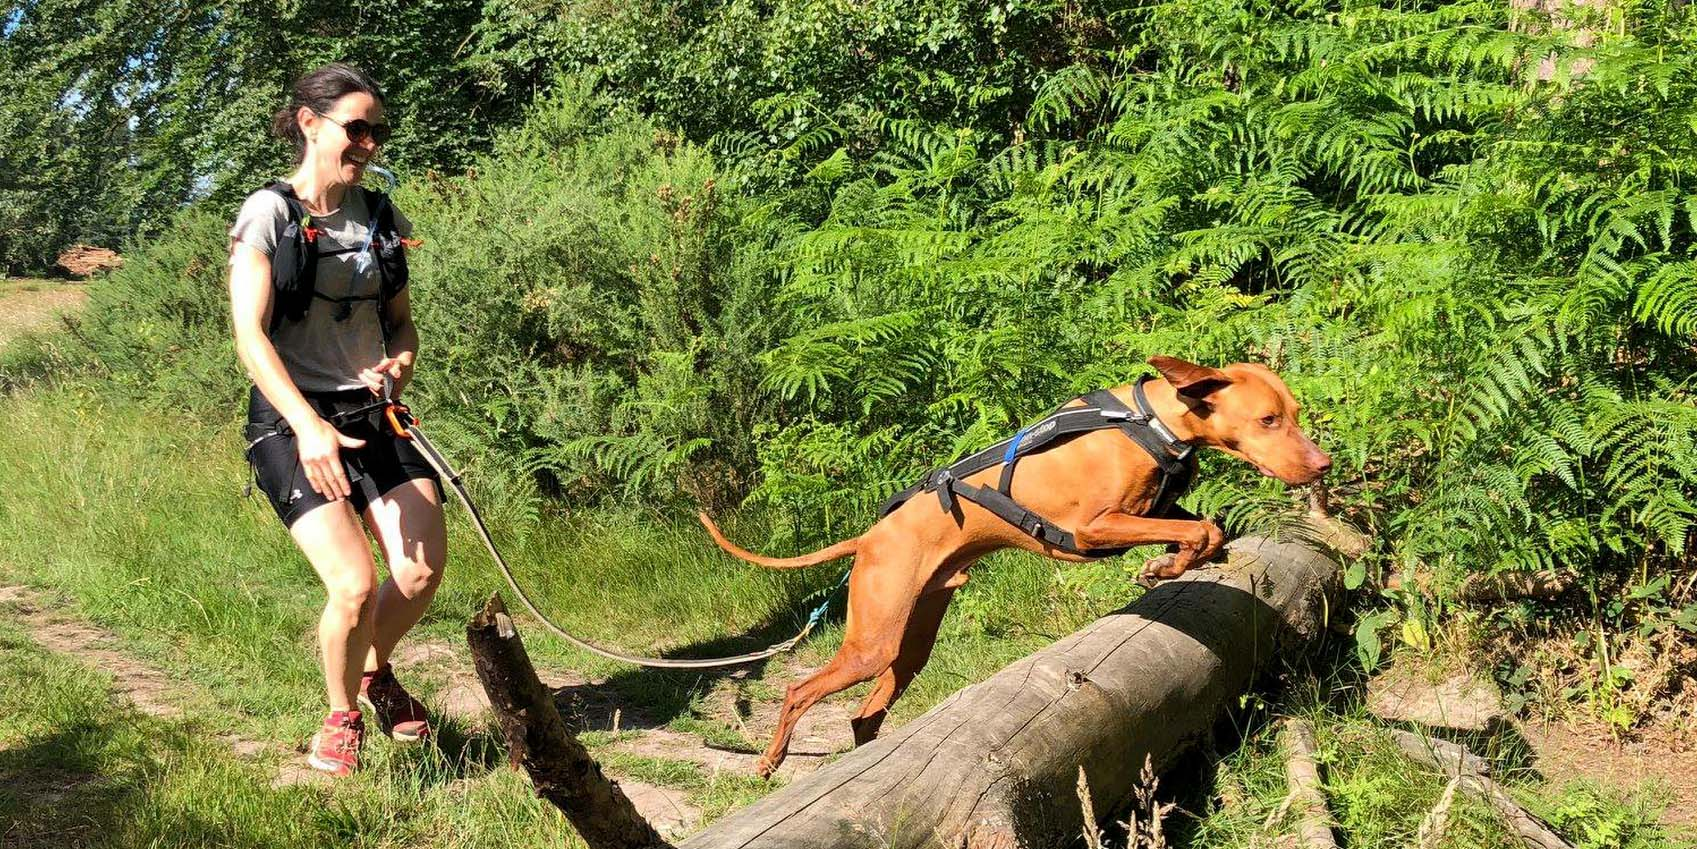 Dog Jumping Over Tree